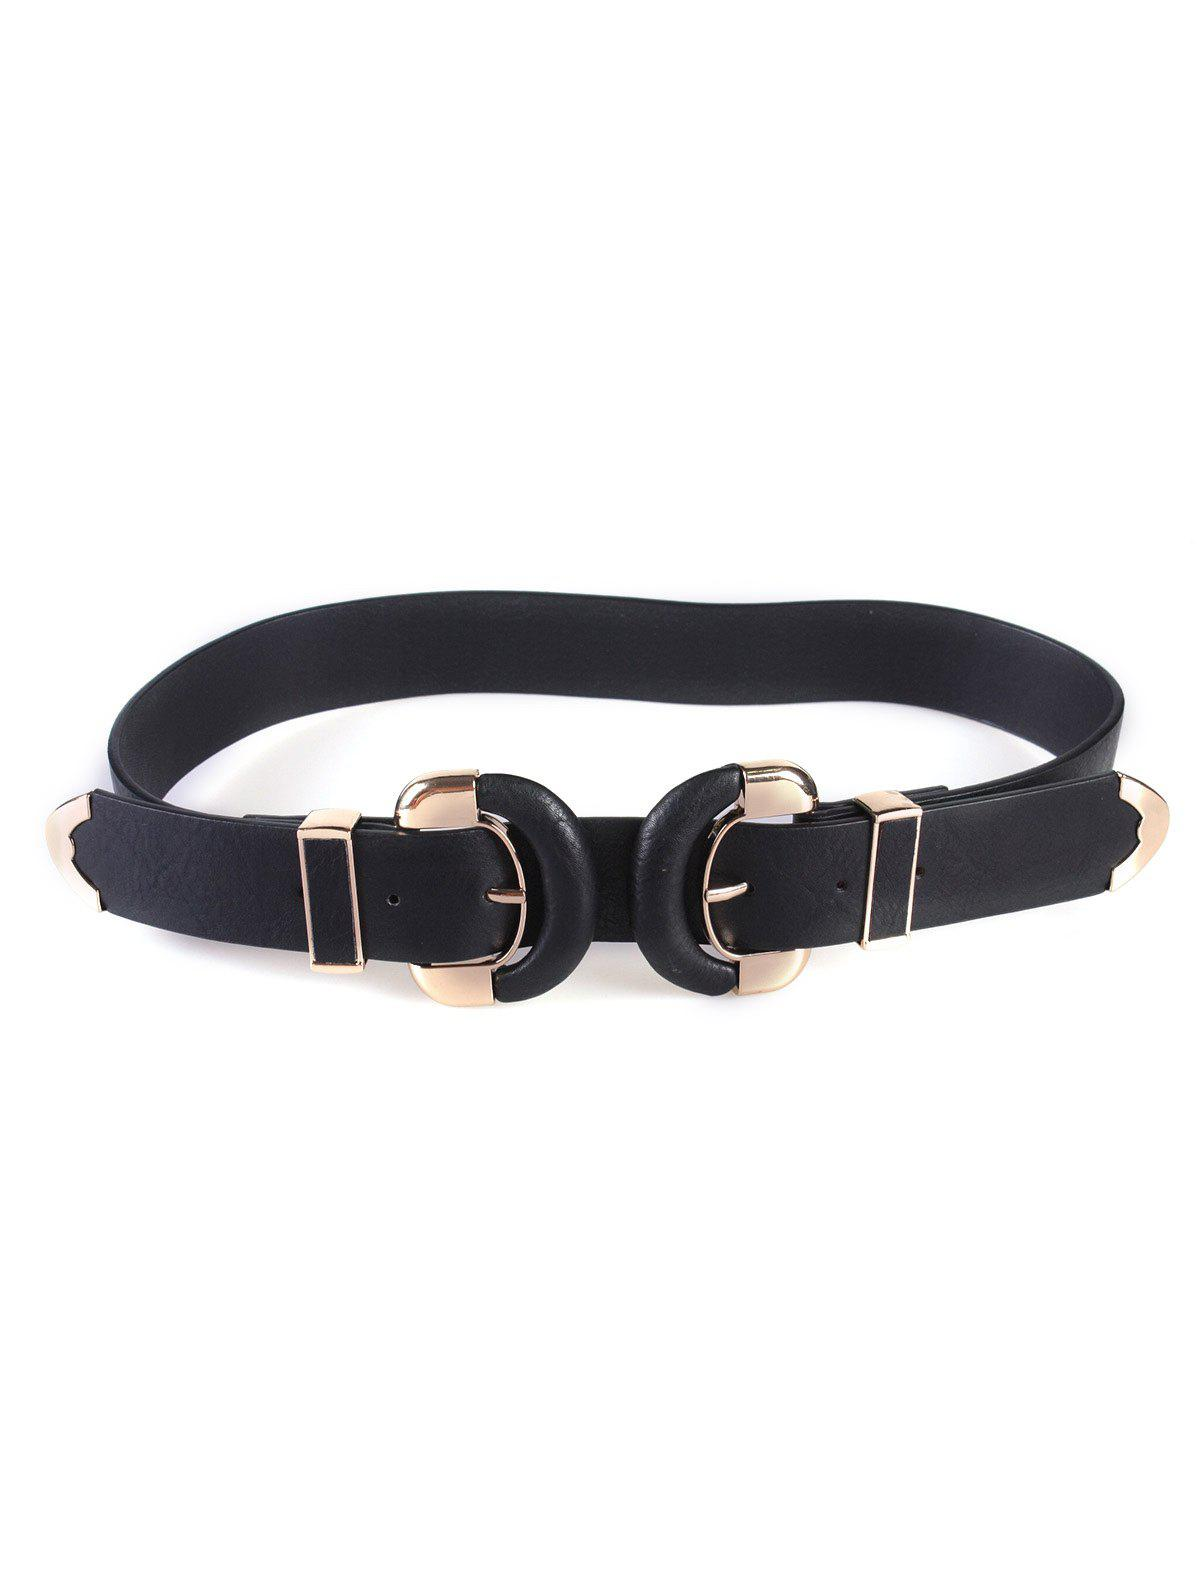 Double D Buckles Wide Belt - BLACK